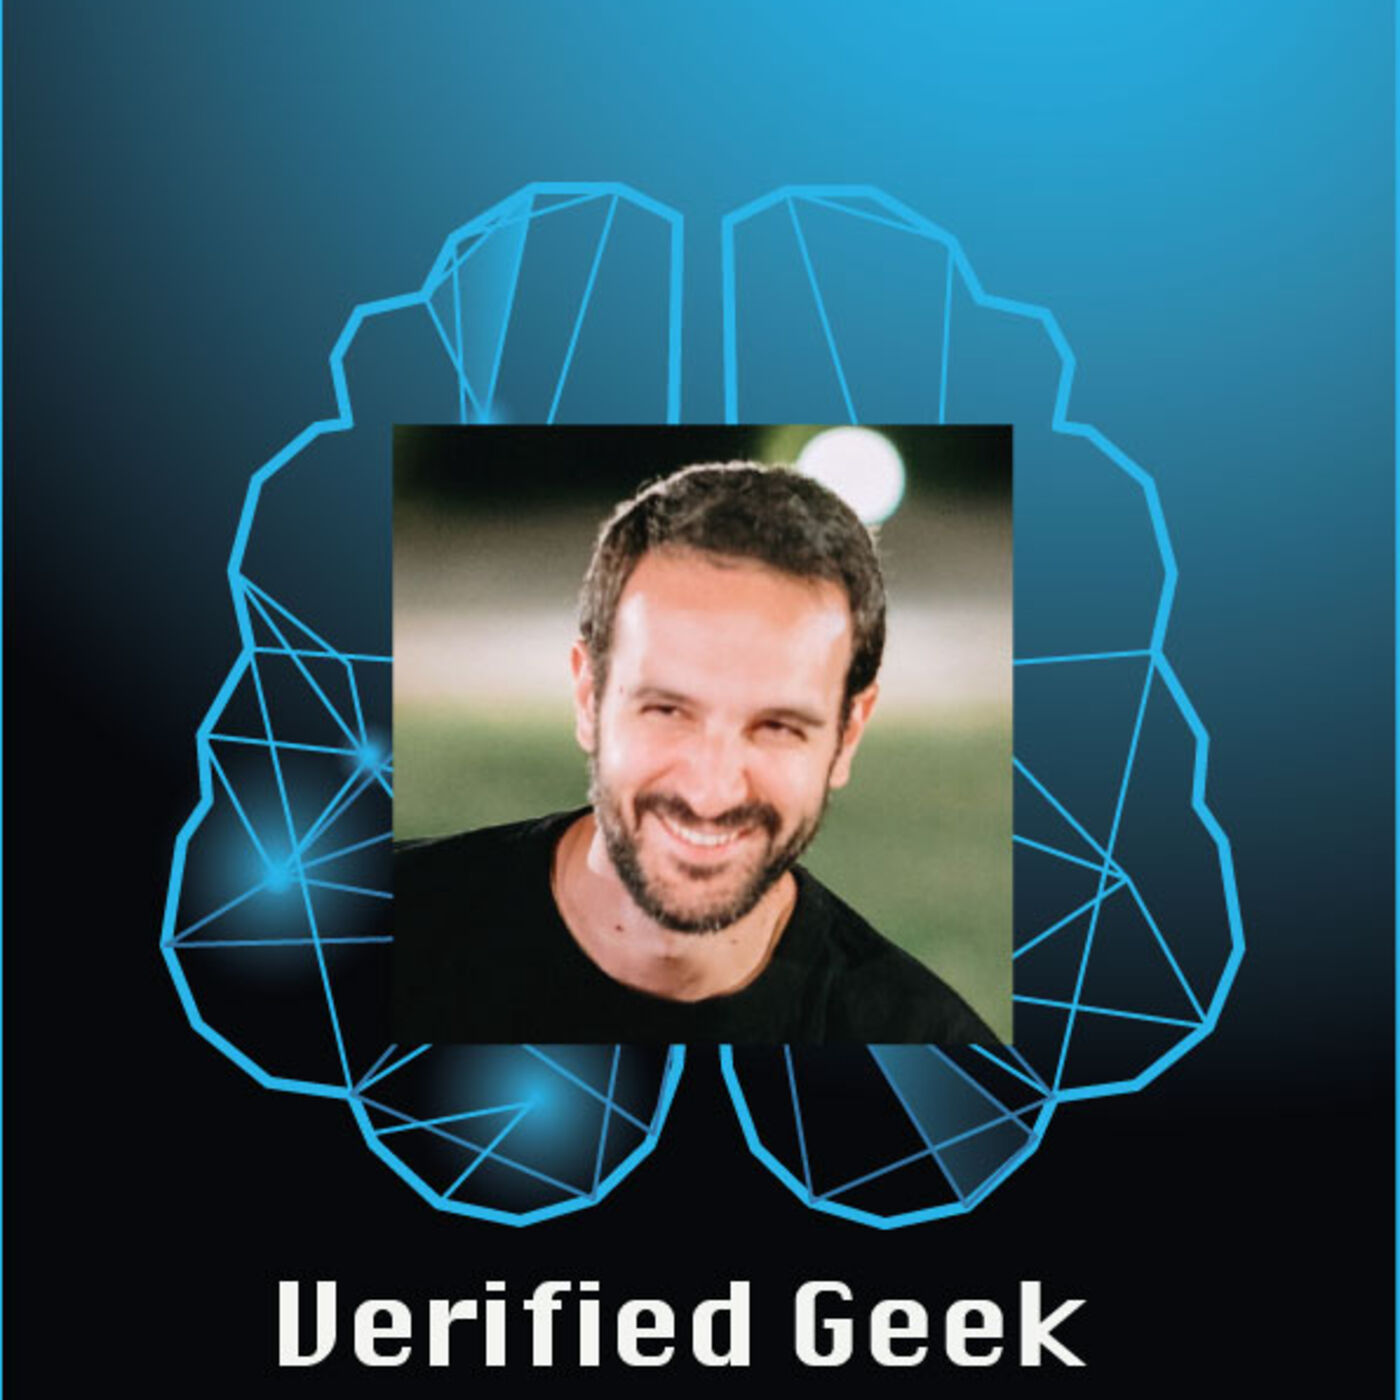 Fil Bezerianos - Cloud Computing expert discusses certifications and much more!